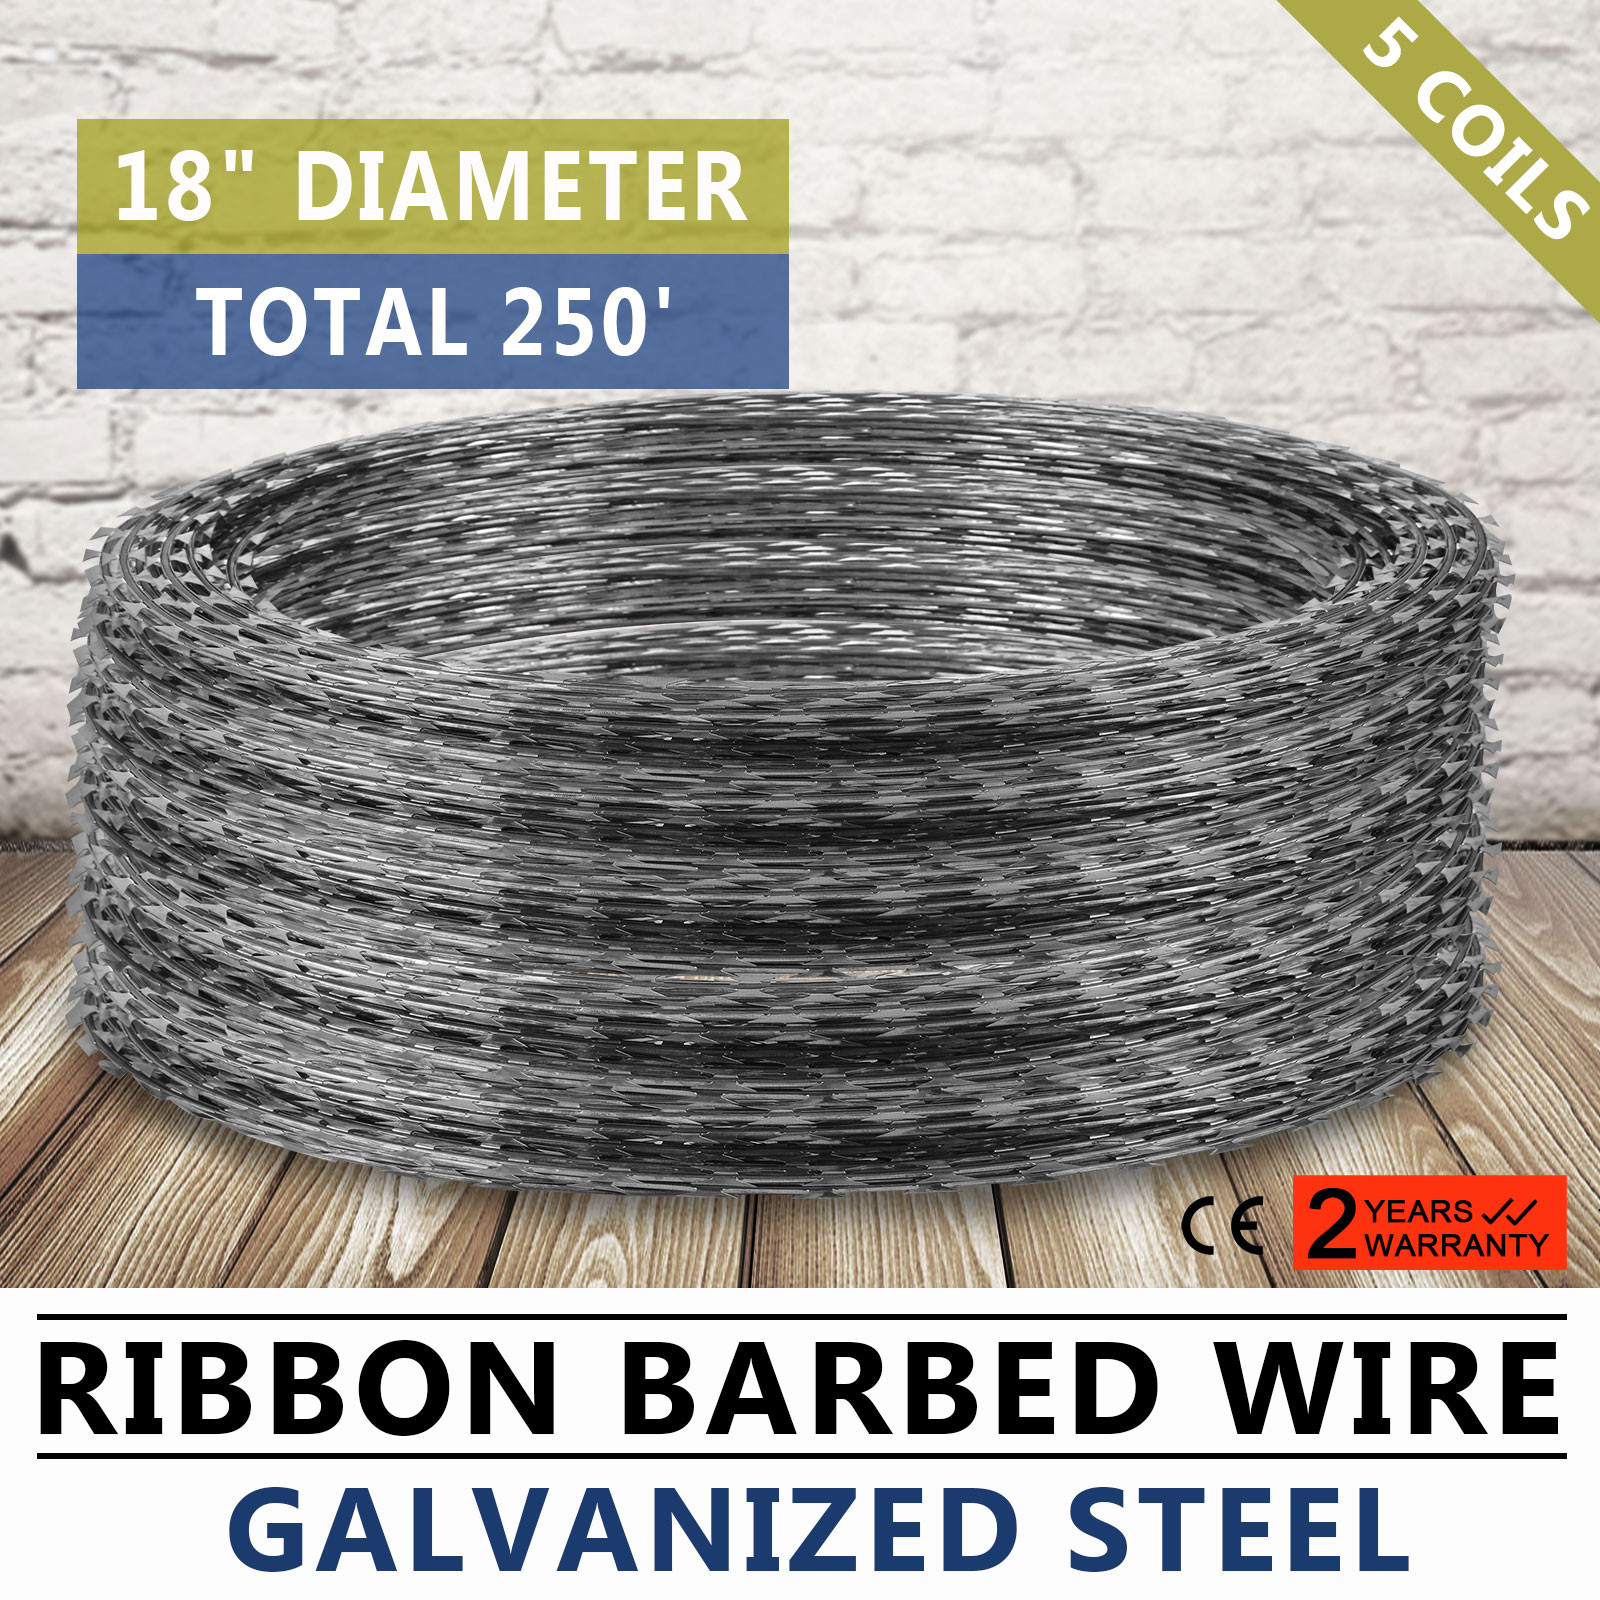 RAZOR / HELICAL BARBED WIRE GALVANIZED STEEL 18\